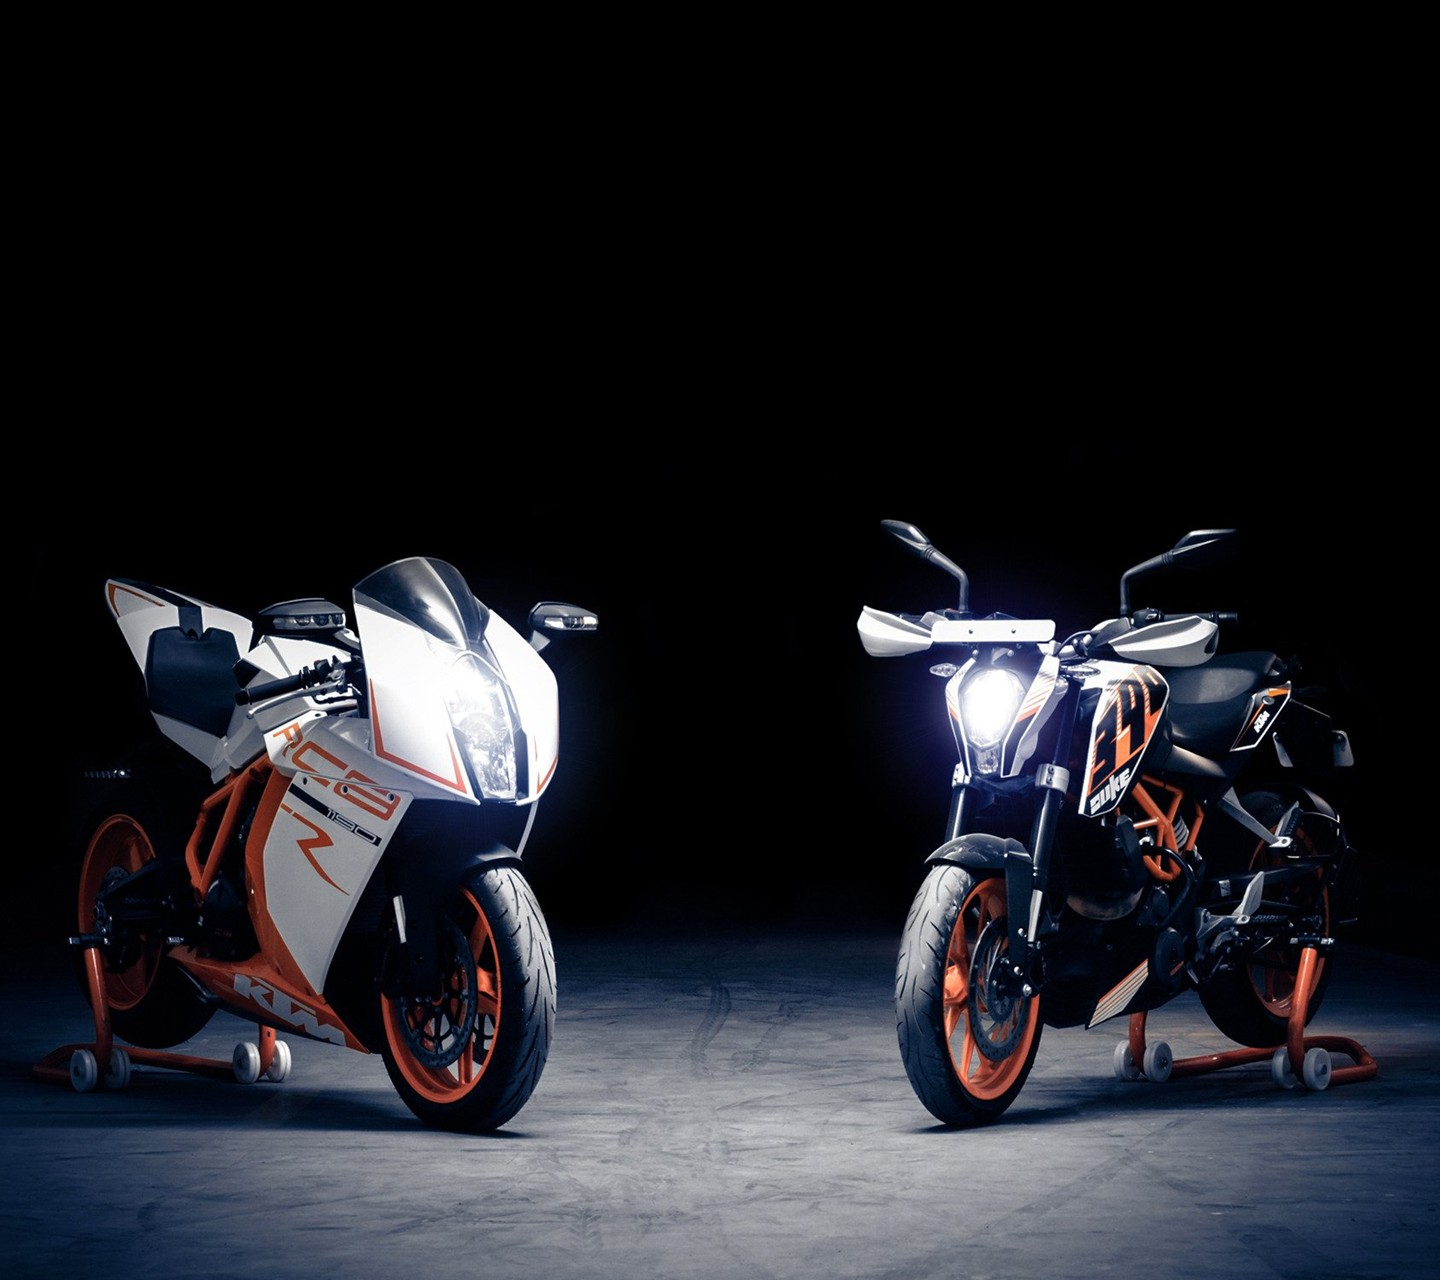 Download Duke bike   Daily new wallpapers Mobile Version 1440x1280